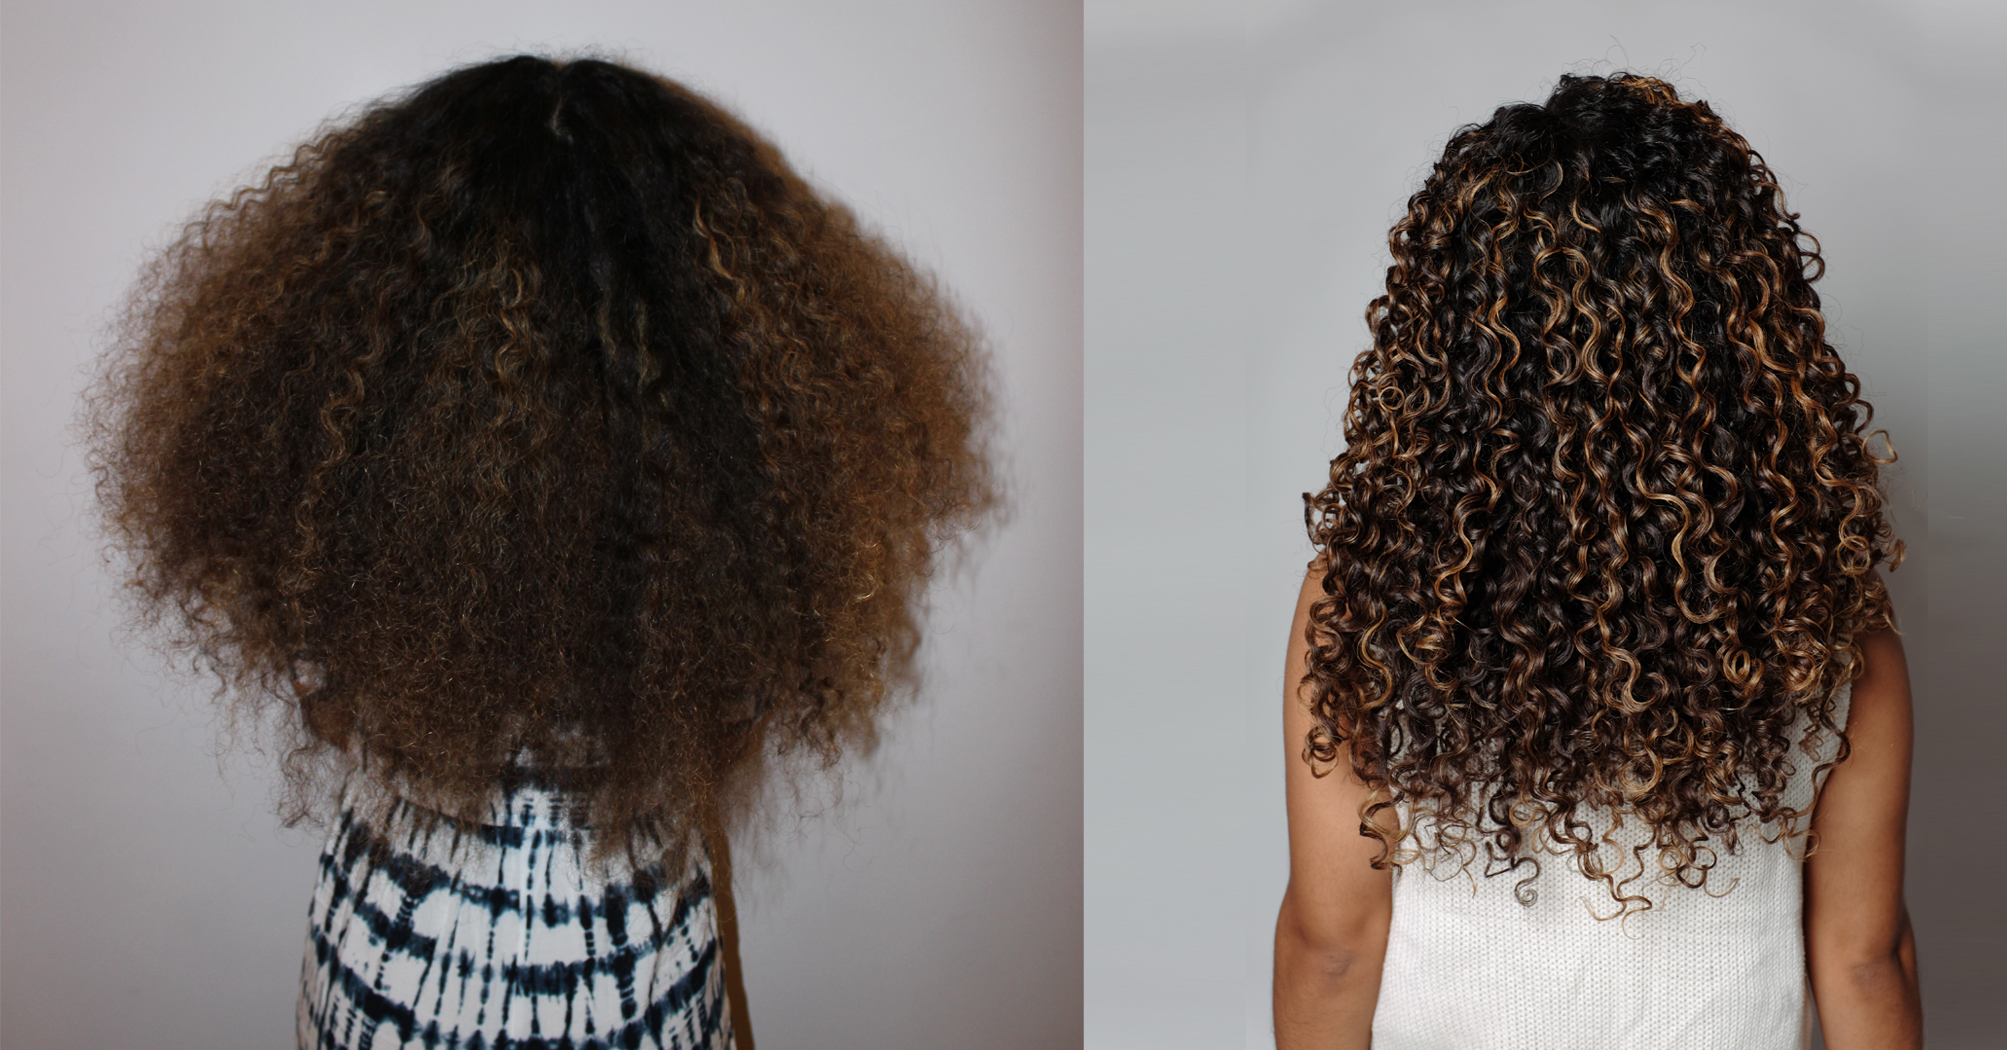 Why a Diametrix Cut is beneficial to my curl maintenance